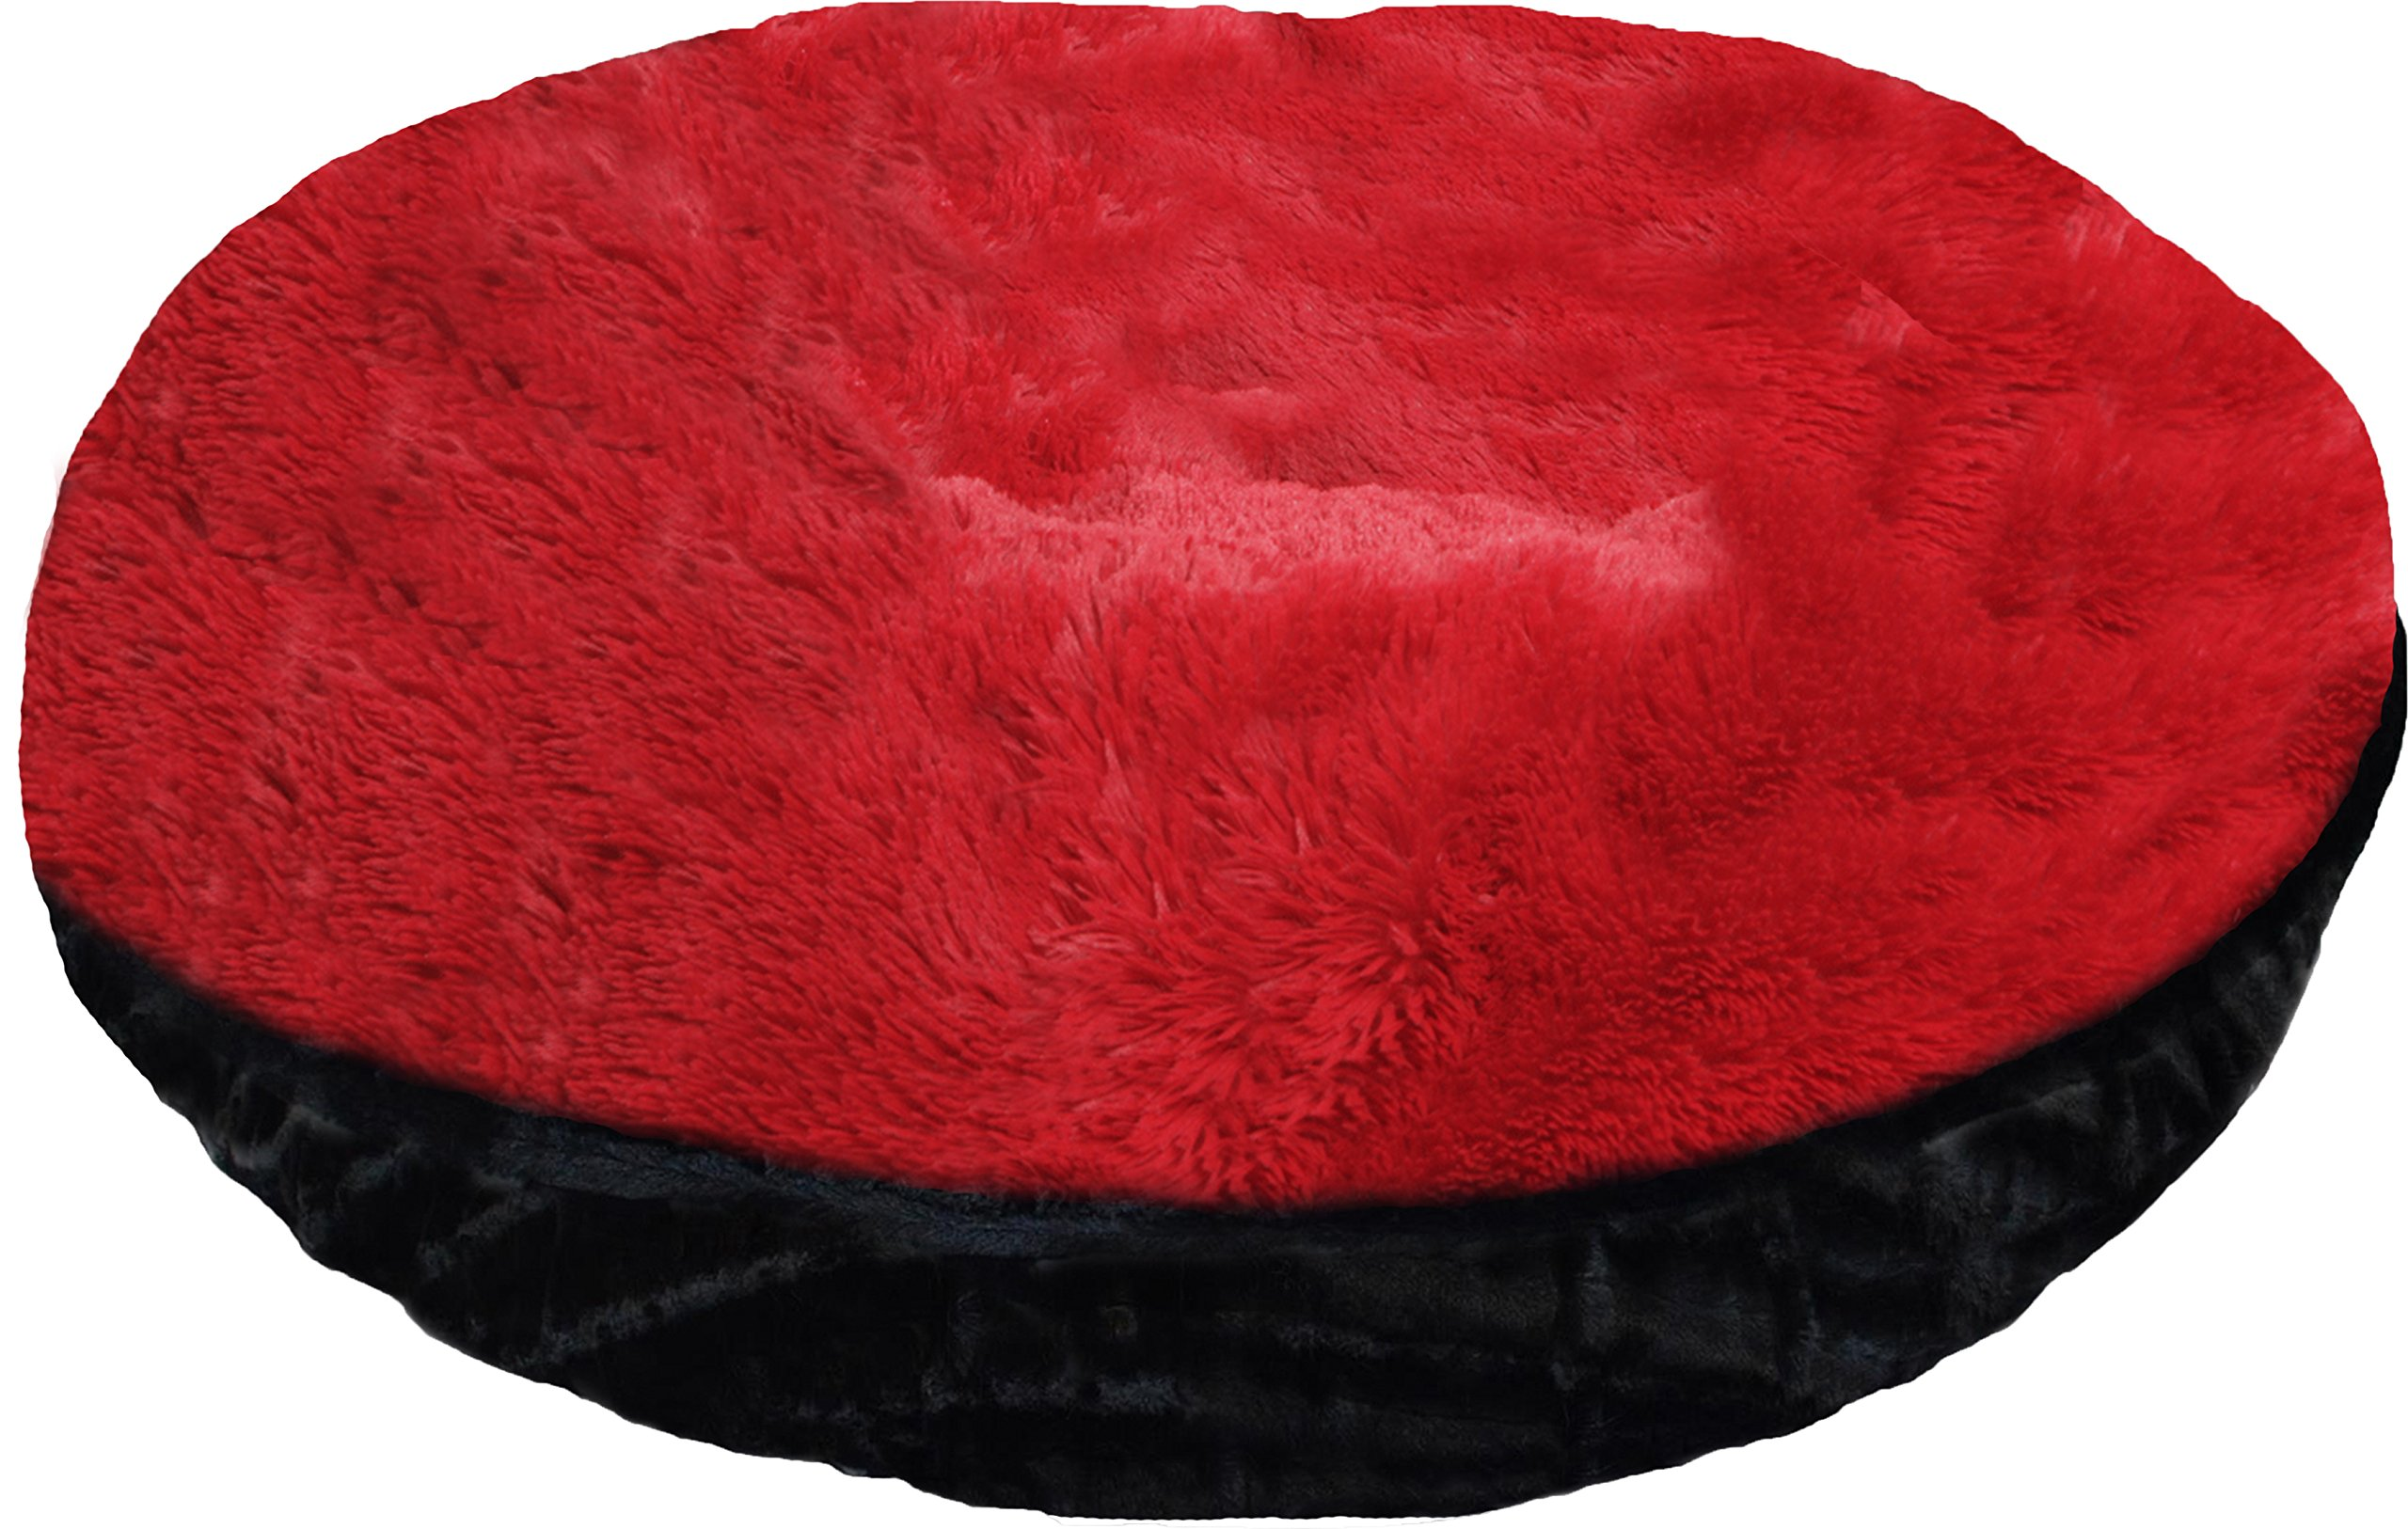 BESSIE AND BARNIE 42-Inch Bagel Bed for Pets, Large, Black Puma/Lipstick